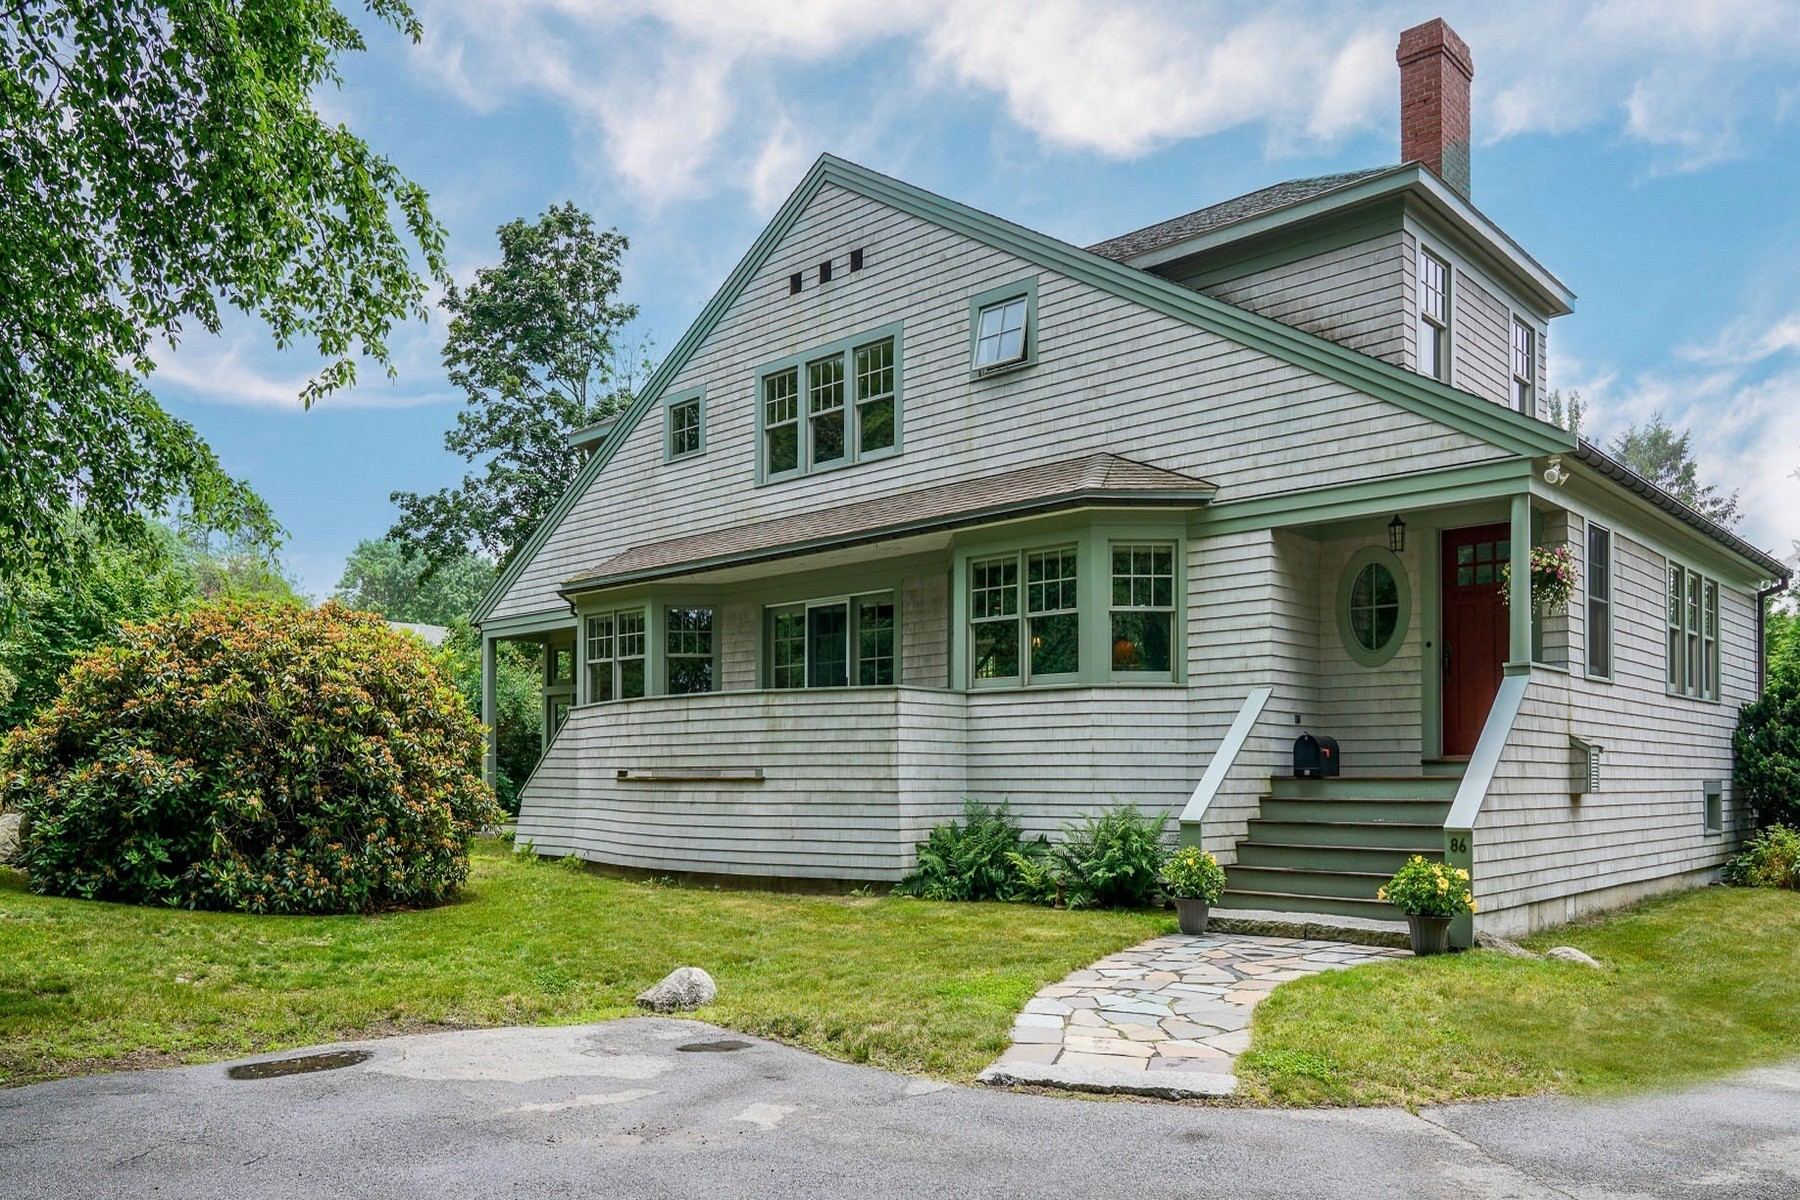 Single Family Home for Sale at Elegant Arts & Crafts 86 Eastern Point Boulevard Gloucester, Massachusetts 01930 United States